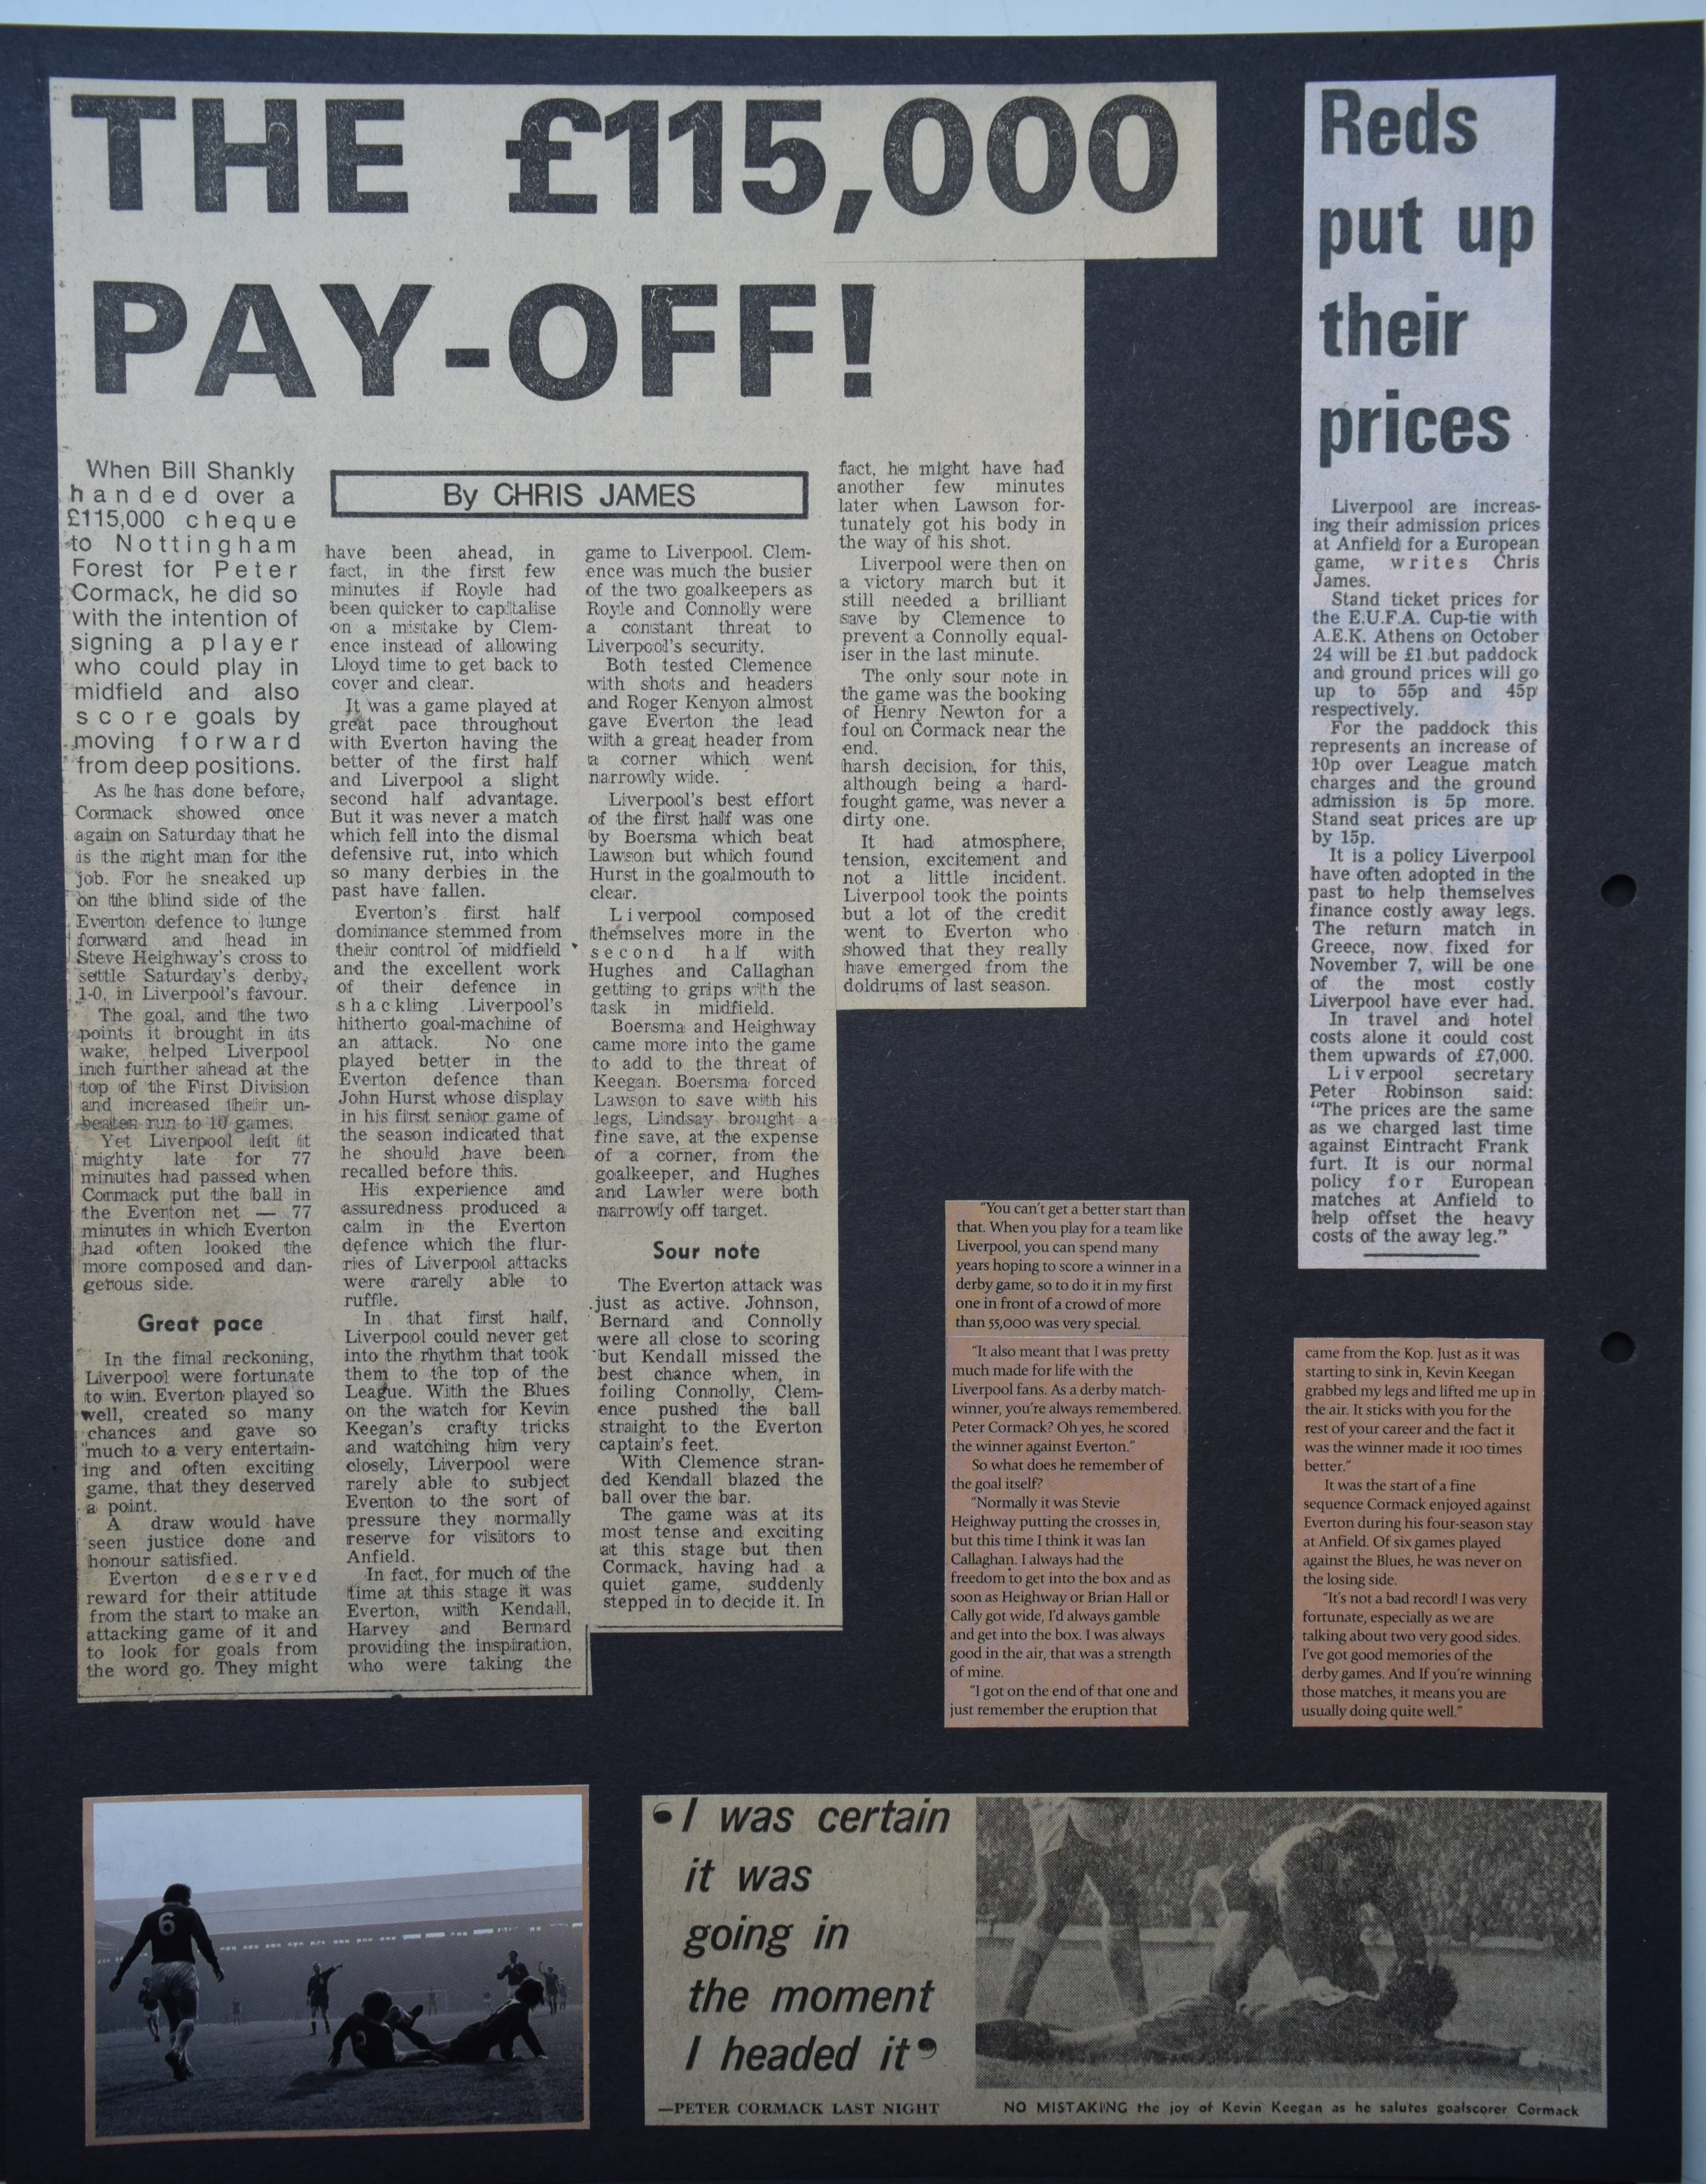 The £115,000 pay-off! - 7 October 1972